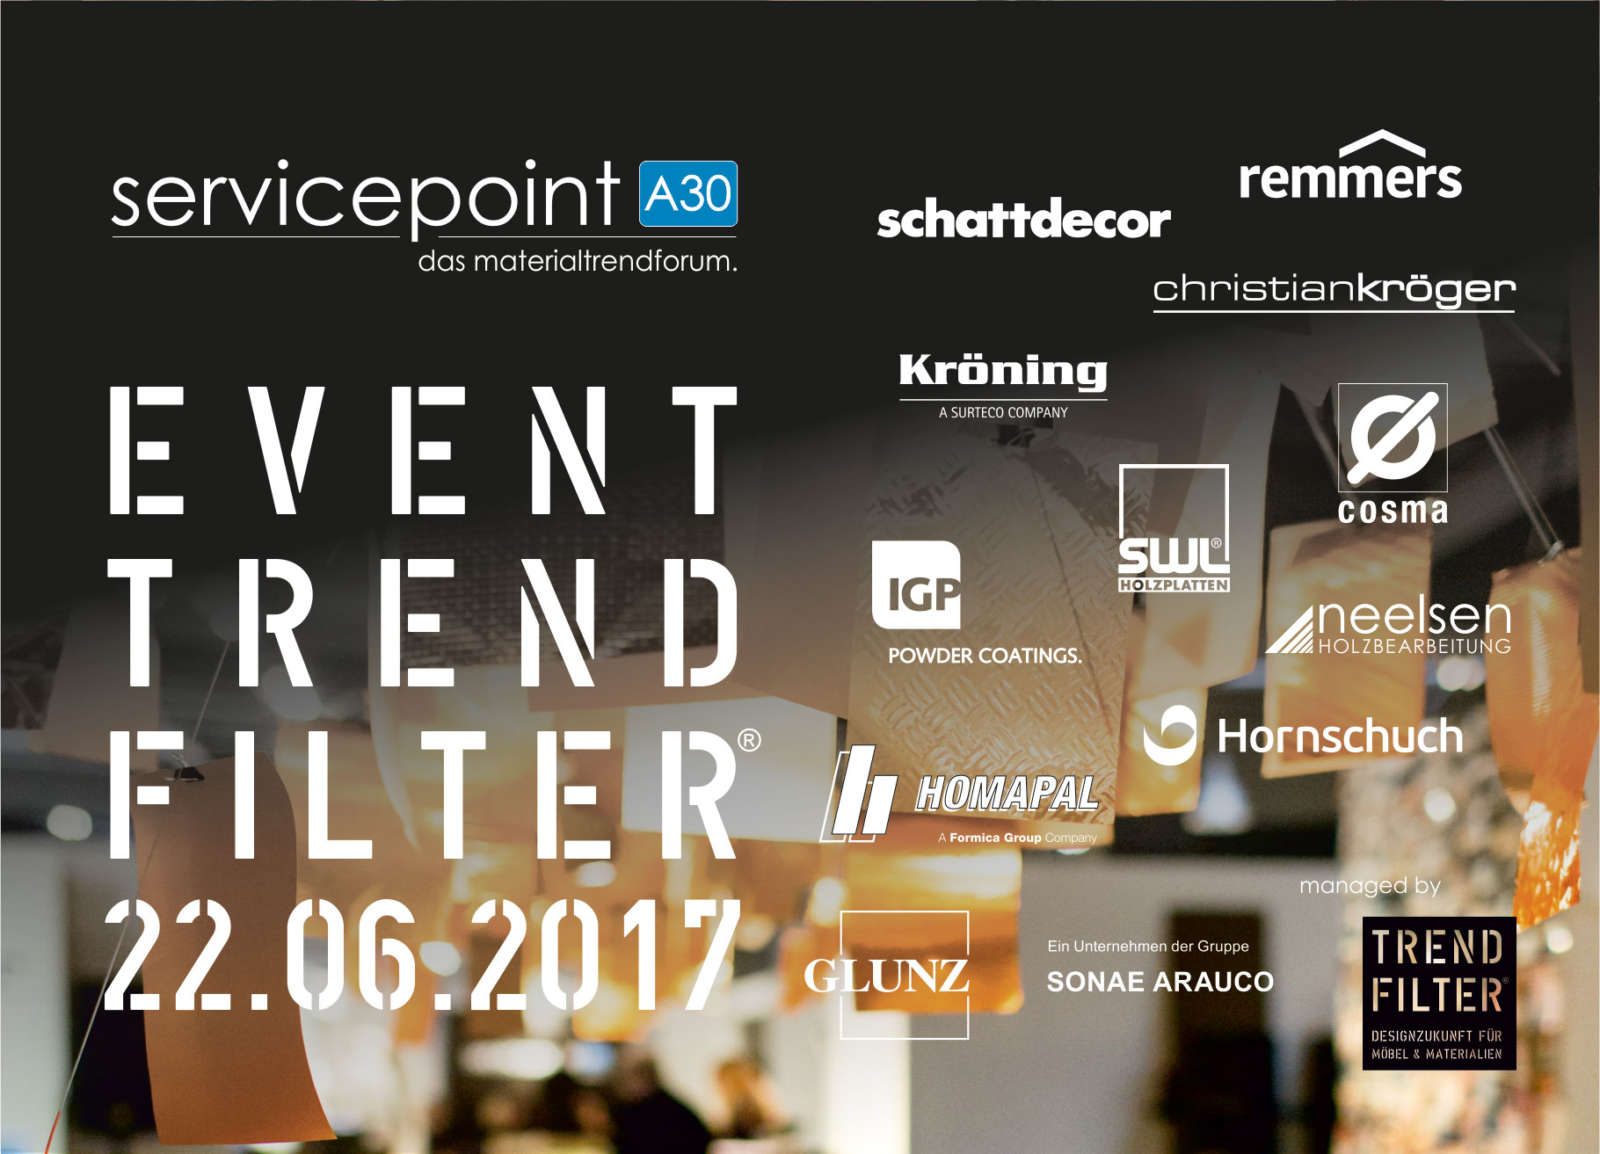 trendforum servicepoint a30 feiert zehnten geburtstag trendfilter. Black Bedroom Furniture Sets. Home Design Ideas